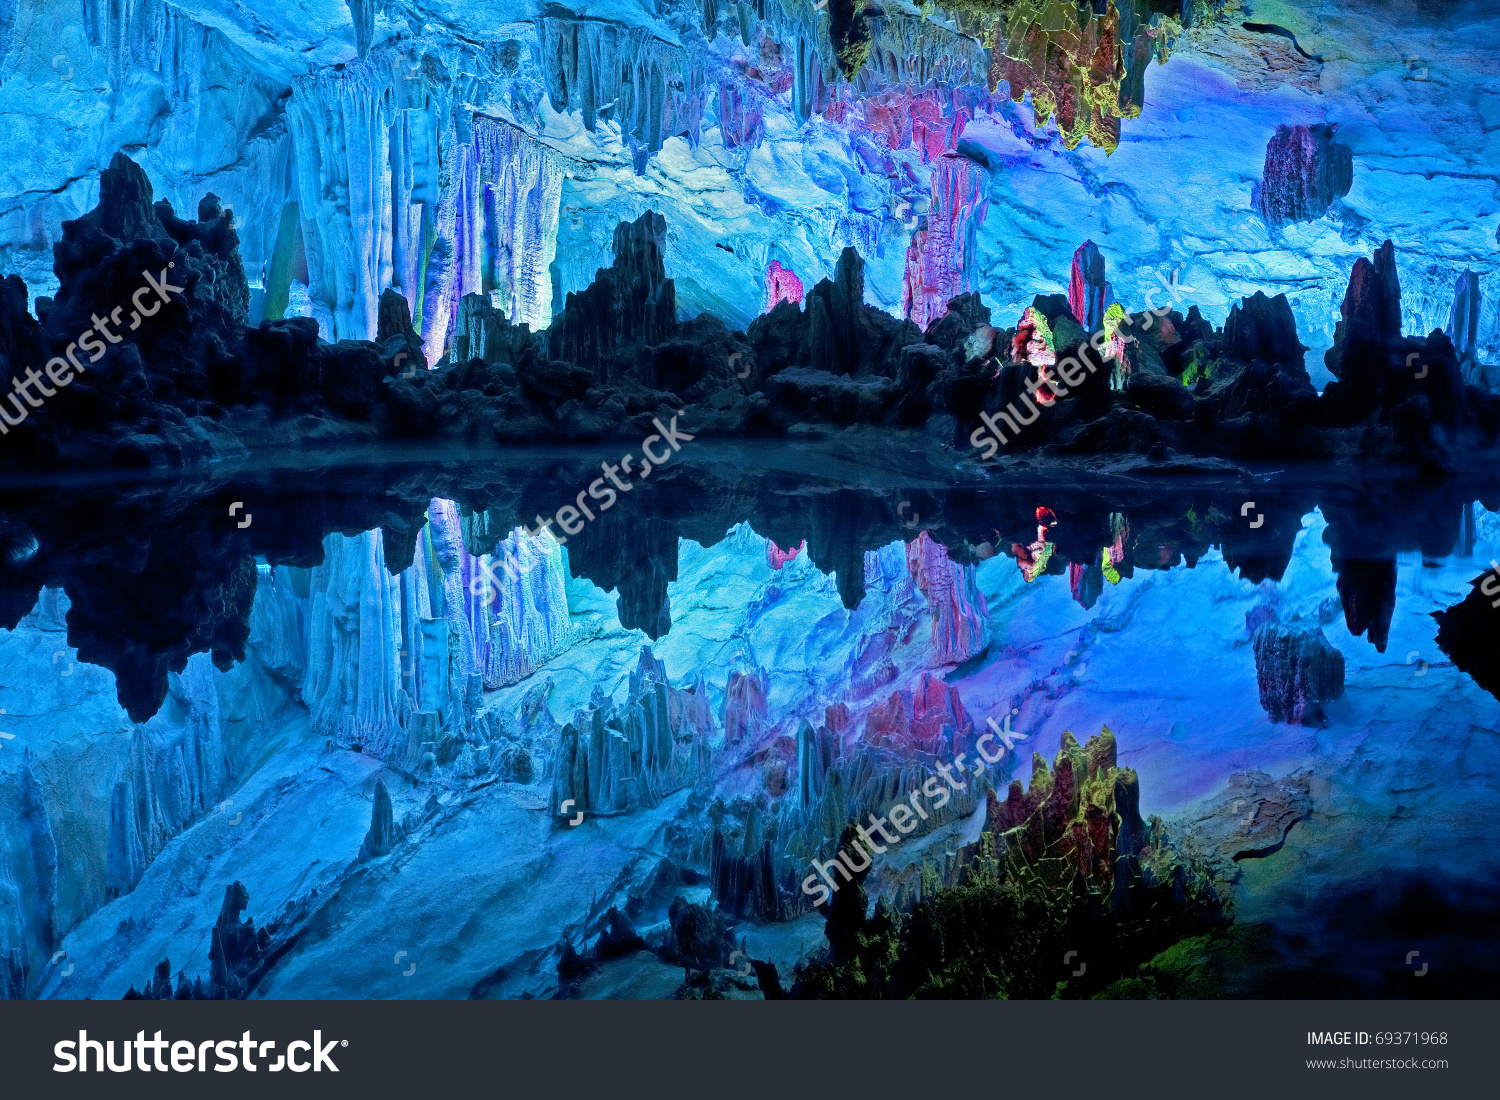 Reed Flute Cave clipart #9, Download drawings